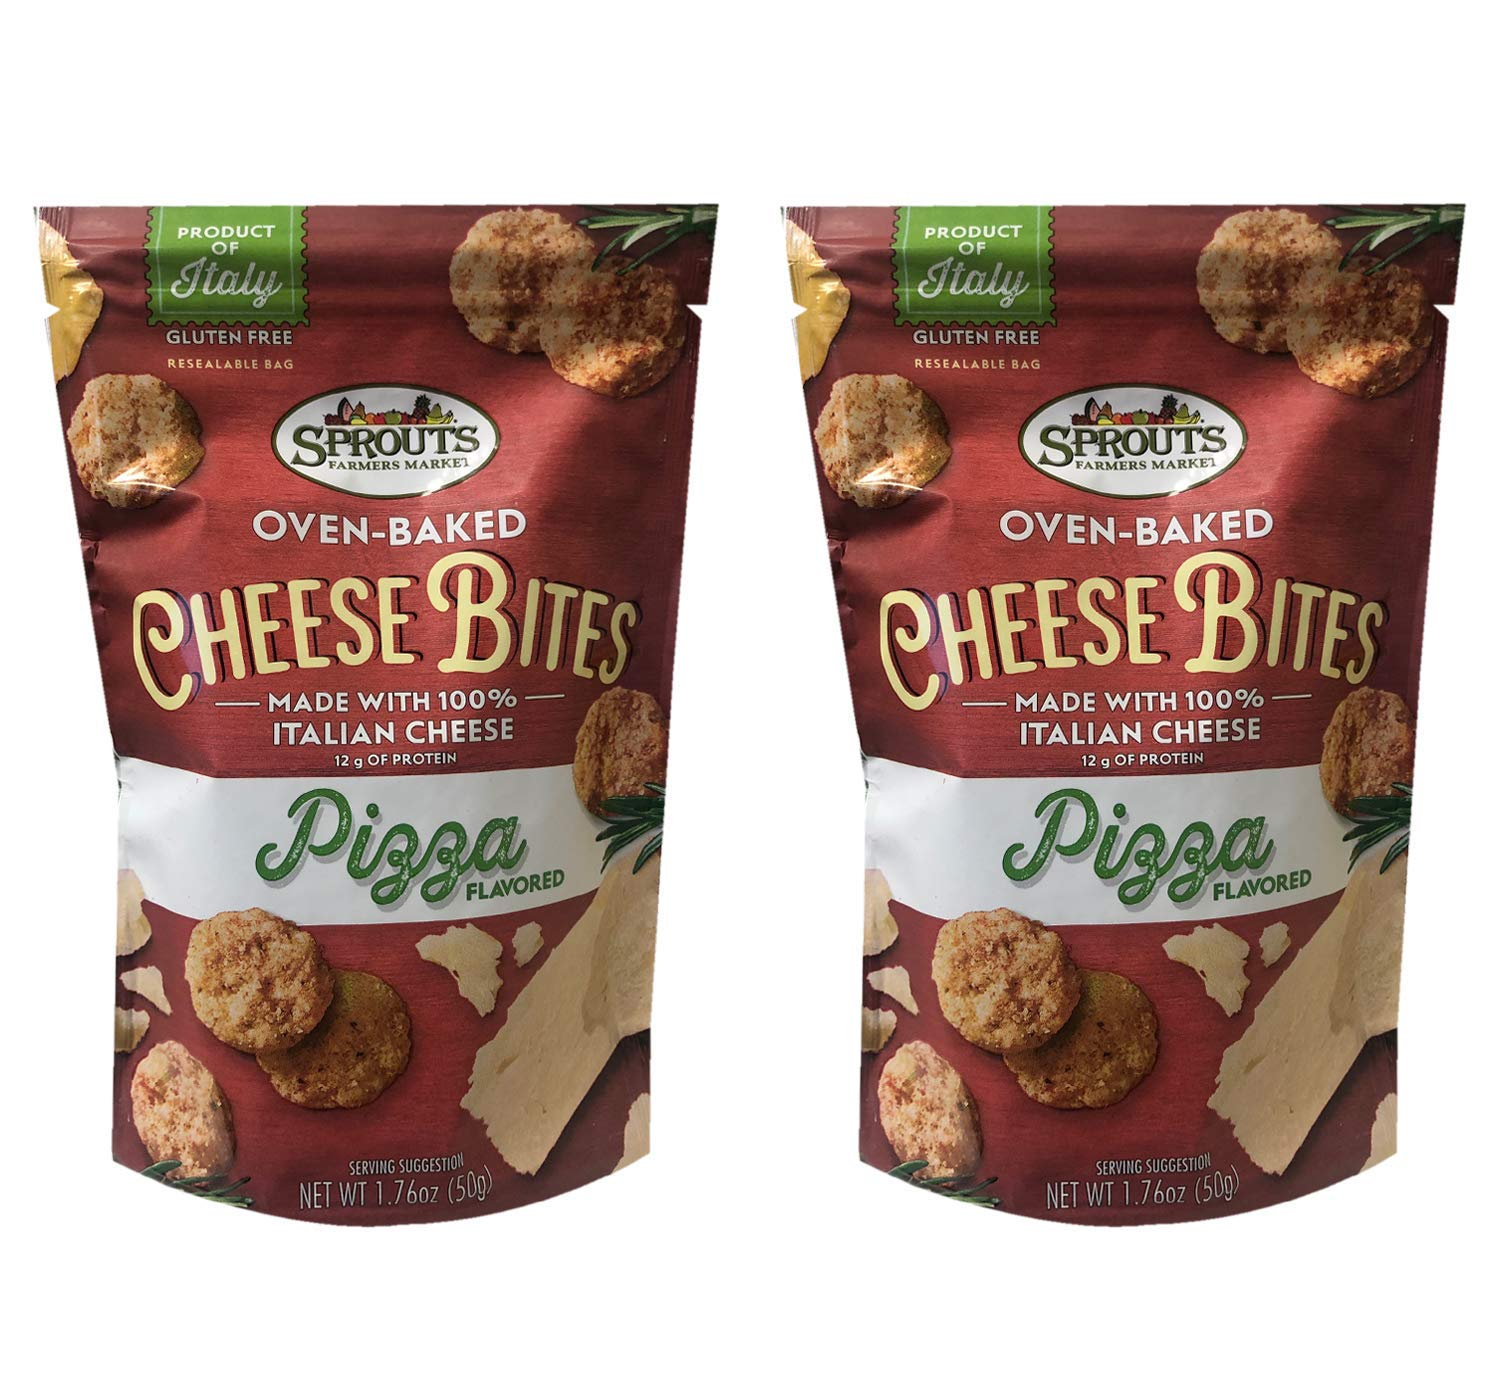 Sprouts Oven-Baked Italian Real Cheese Bites 1.76oz, 2 Pack (Pizza)